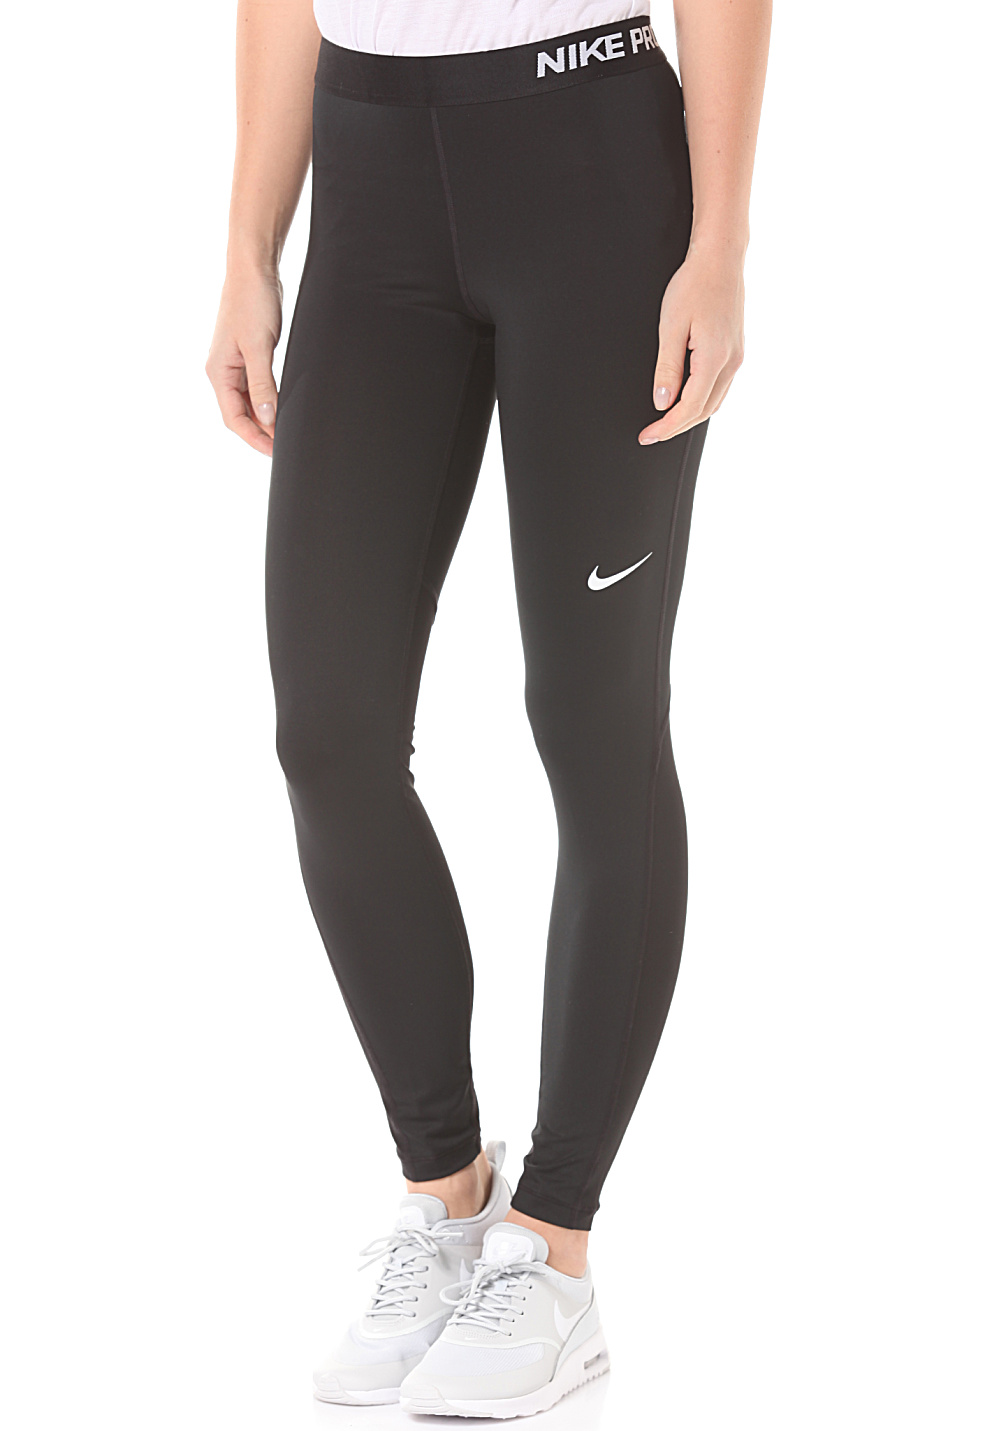 nike sportswear pro cool tight leggings pour femme. Black Bedroom Furniture Sets. Home Design Ideas